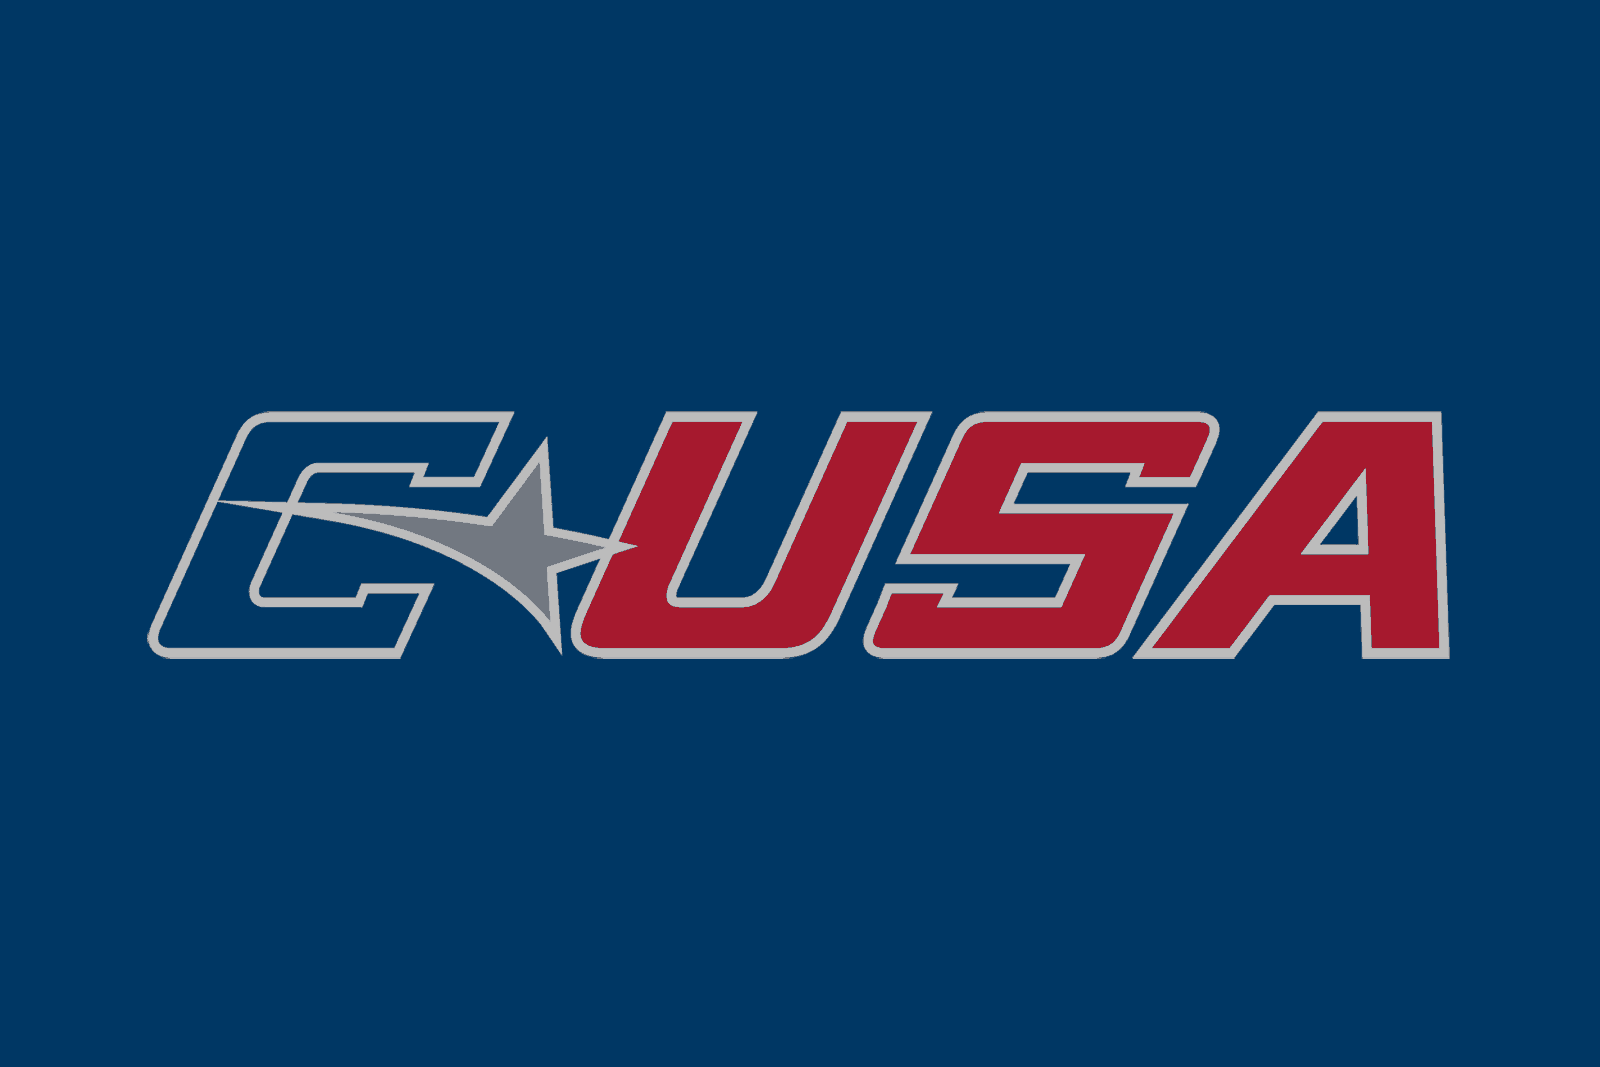 2021 Conference USA football TV schedule